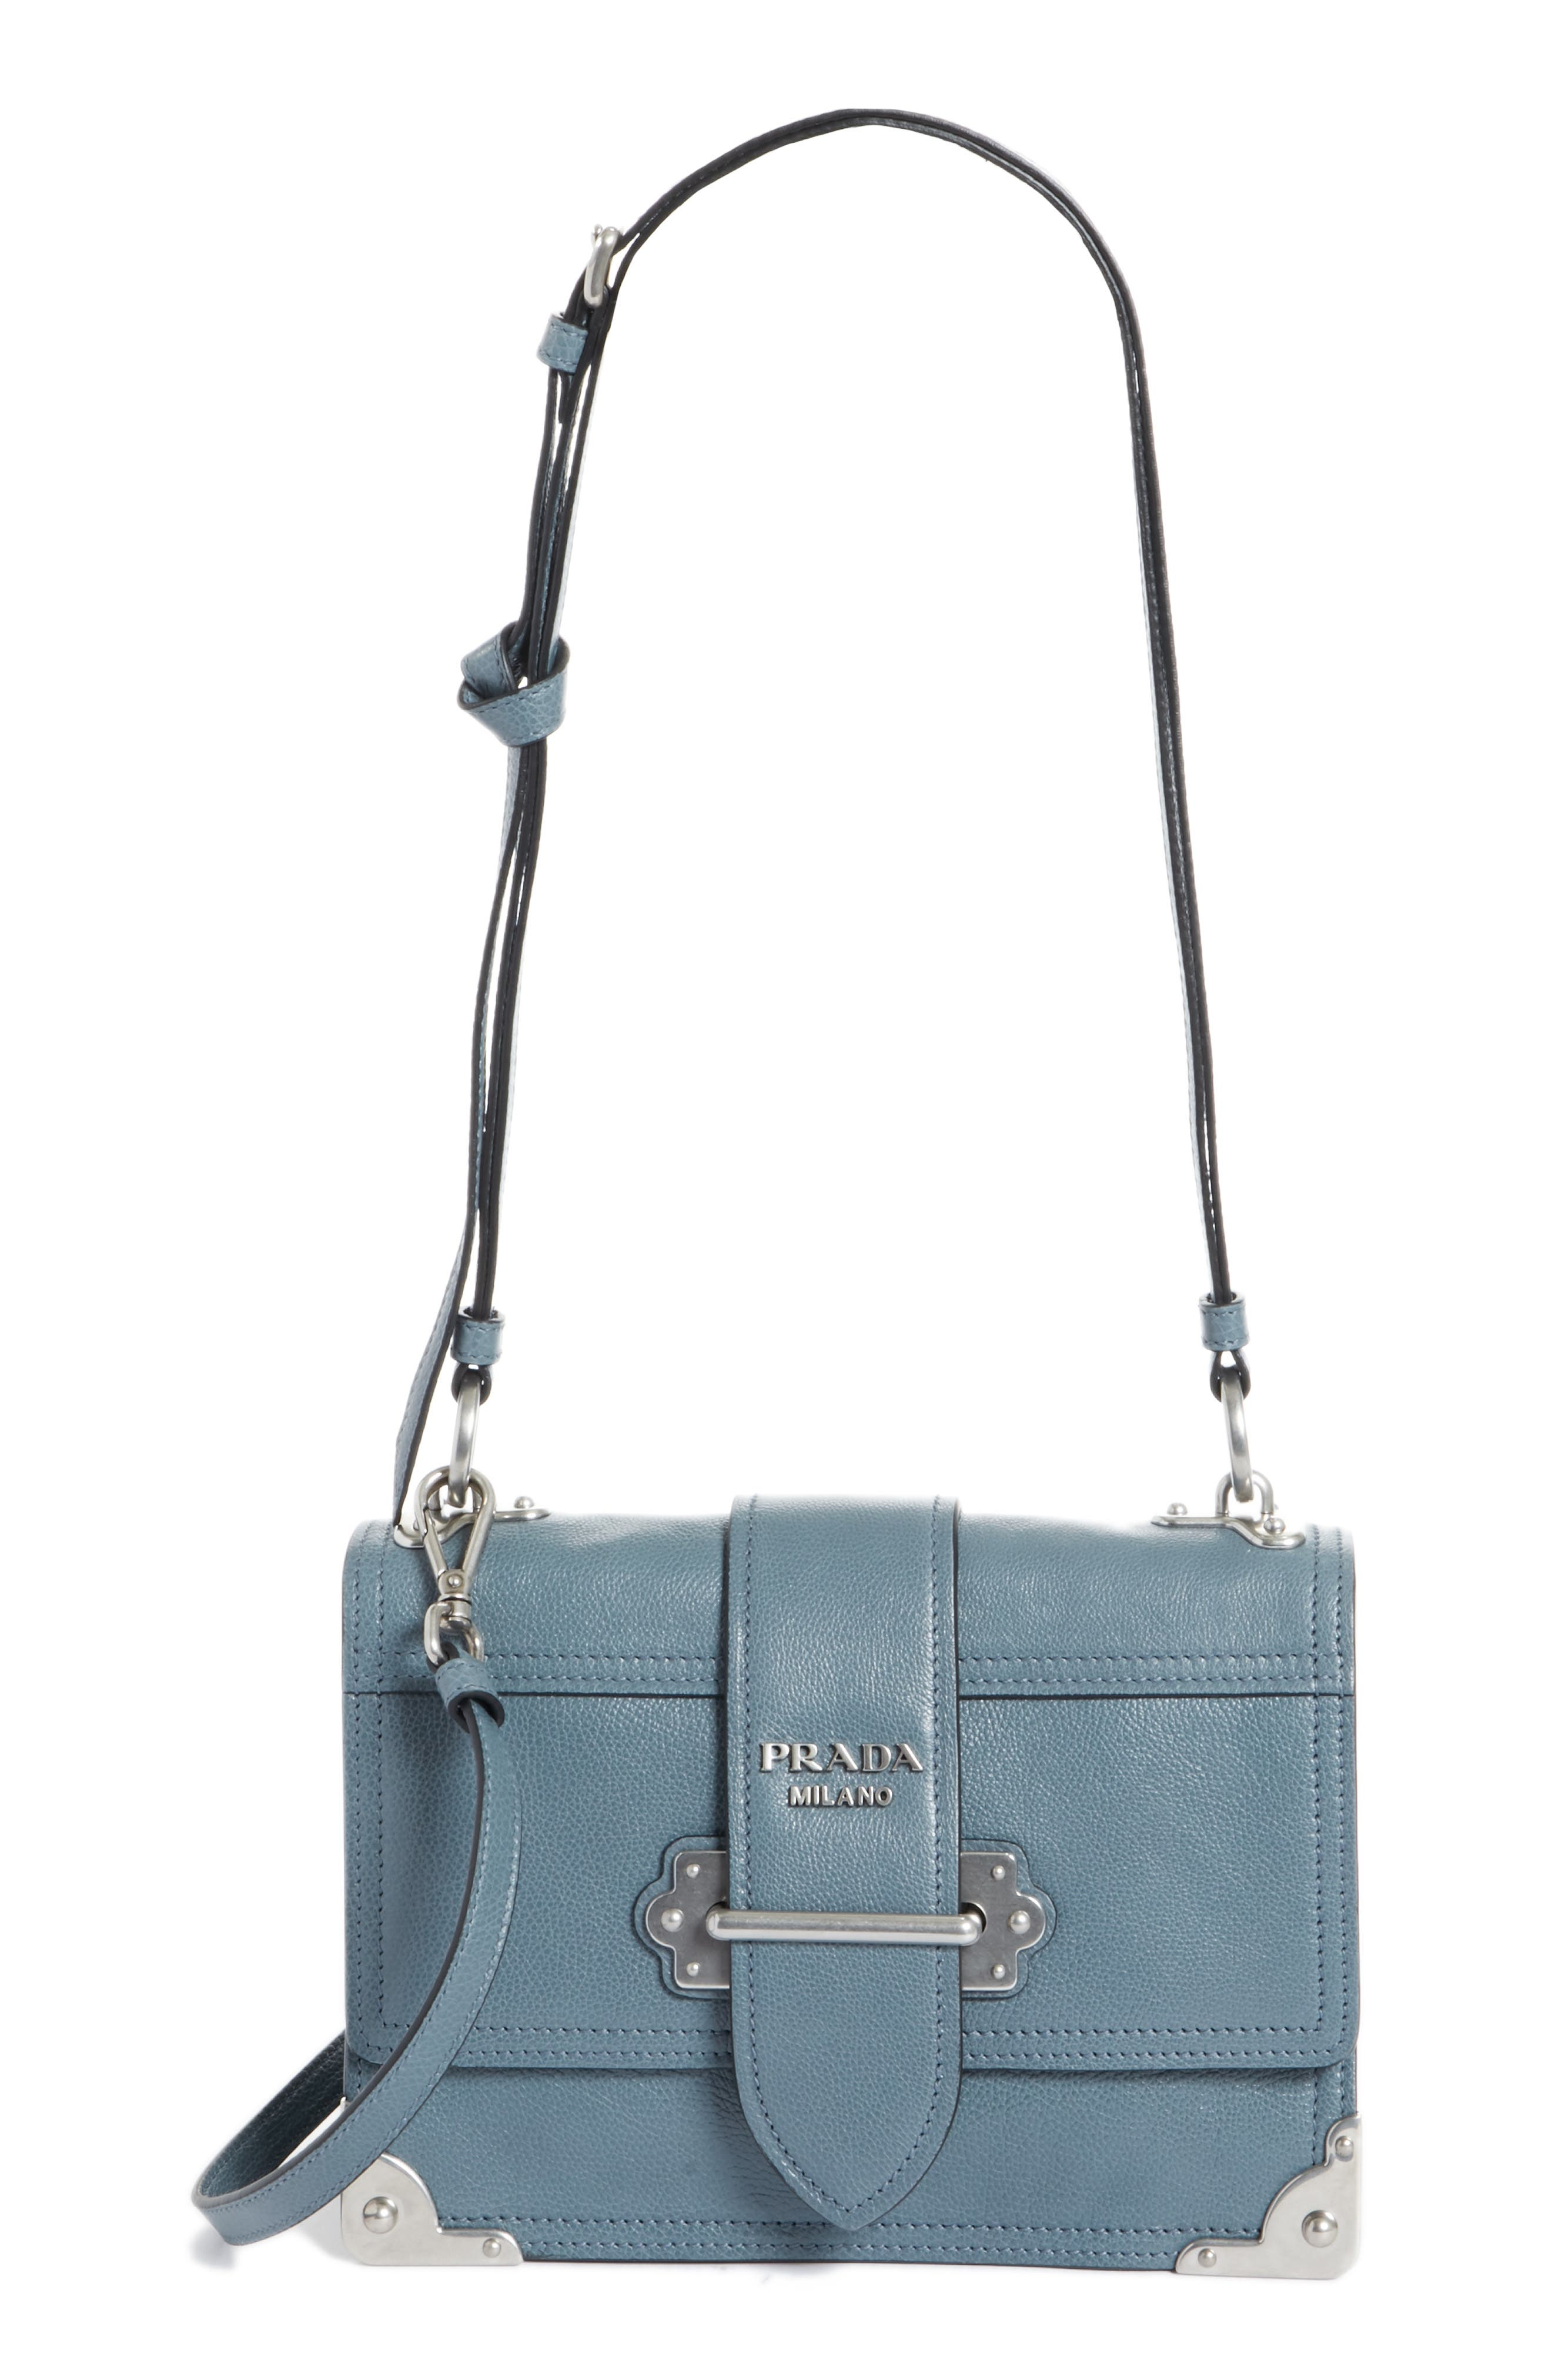 Cahier Glace Calfskin Convertible Shoulder Bag,                         Main,                         color, MARINE/ ASTRALE 1